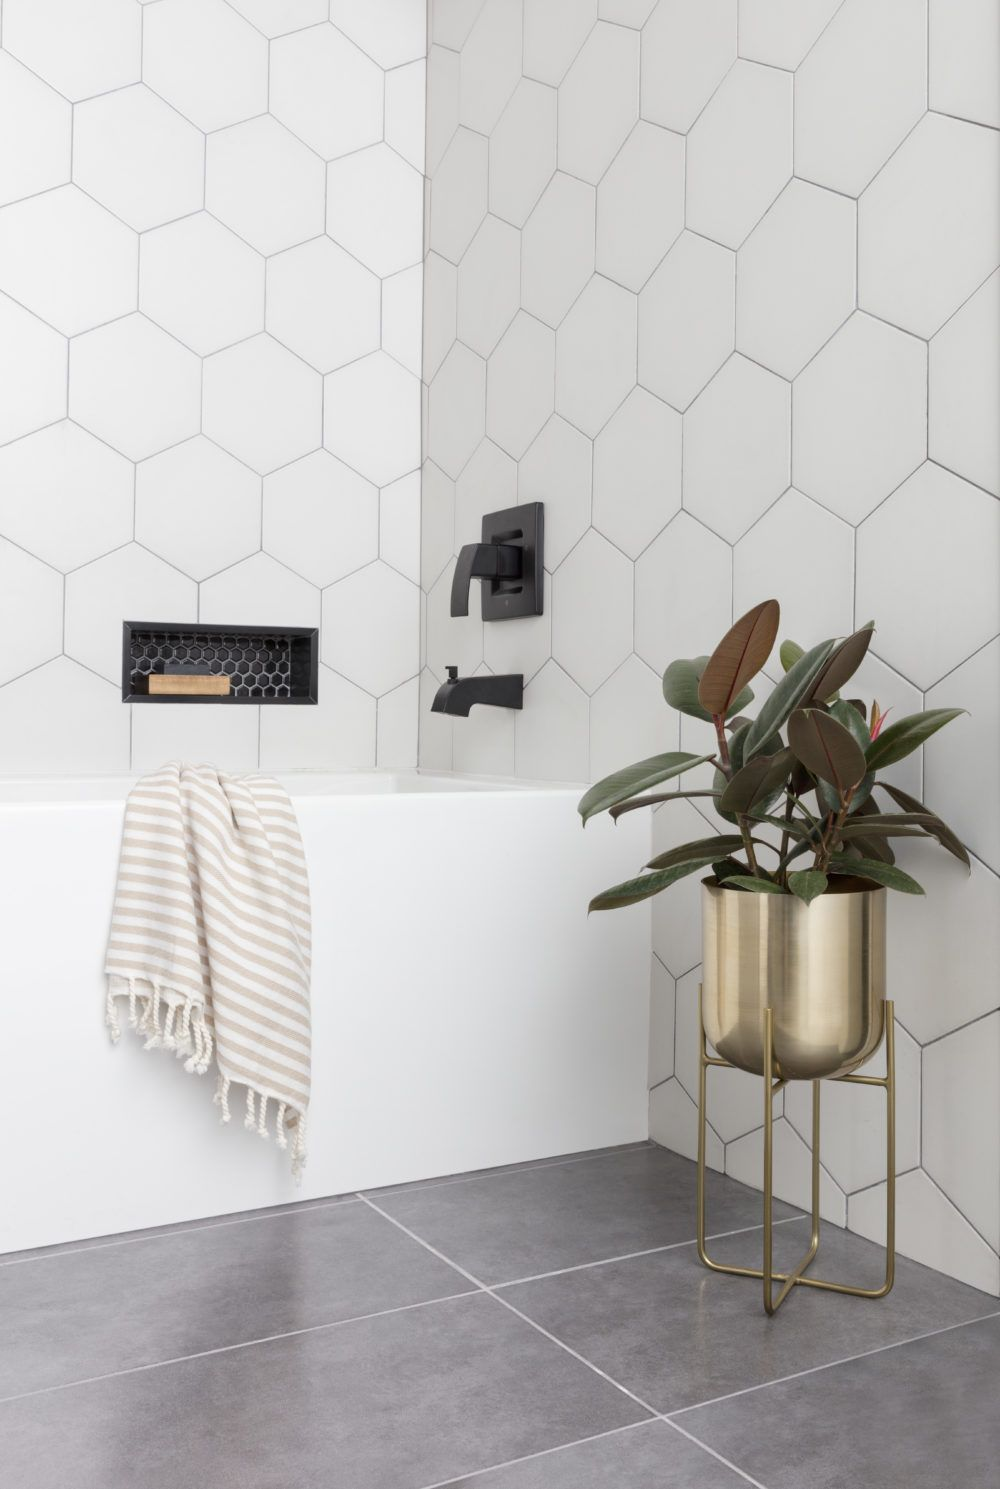 Self Expression Through Geometric Tile The Tile Shop Blog Bathroom Tile Inspiration Modern Bathroom Tile Bathroom Tile Designs